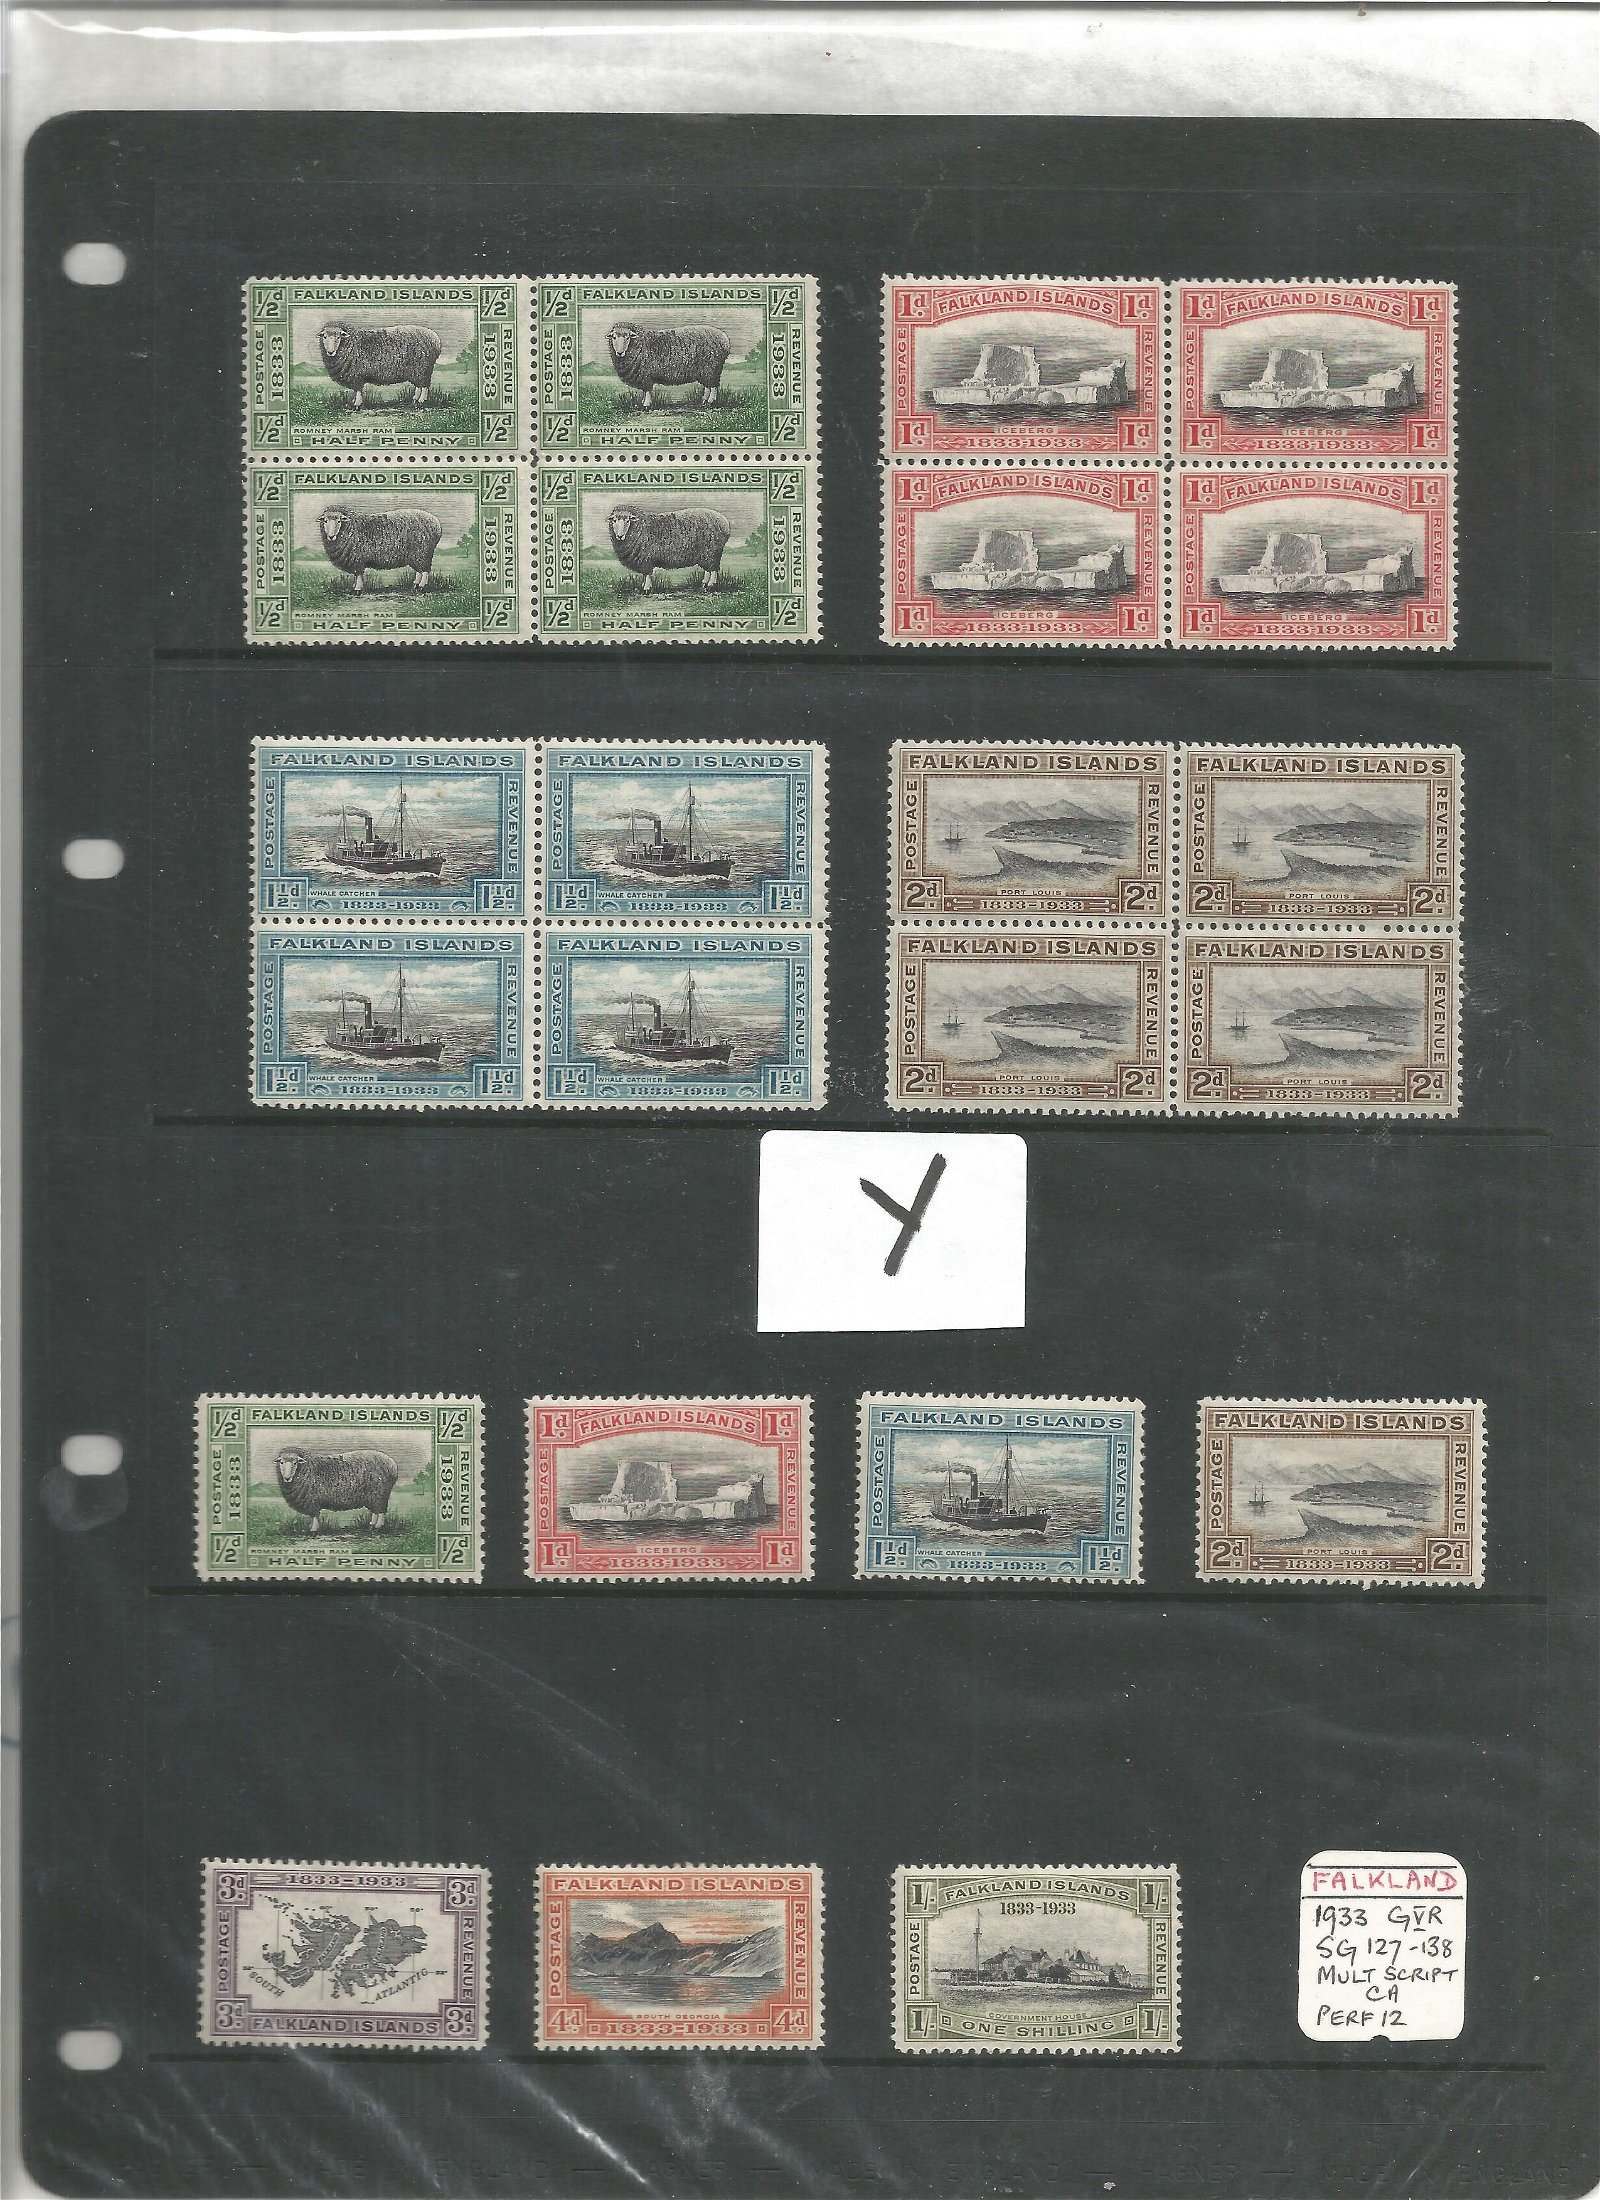 Falkland Islands mint stamp collection. 28 stamps.